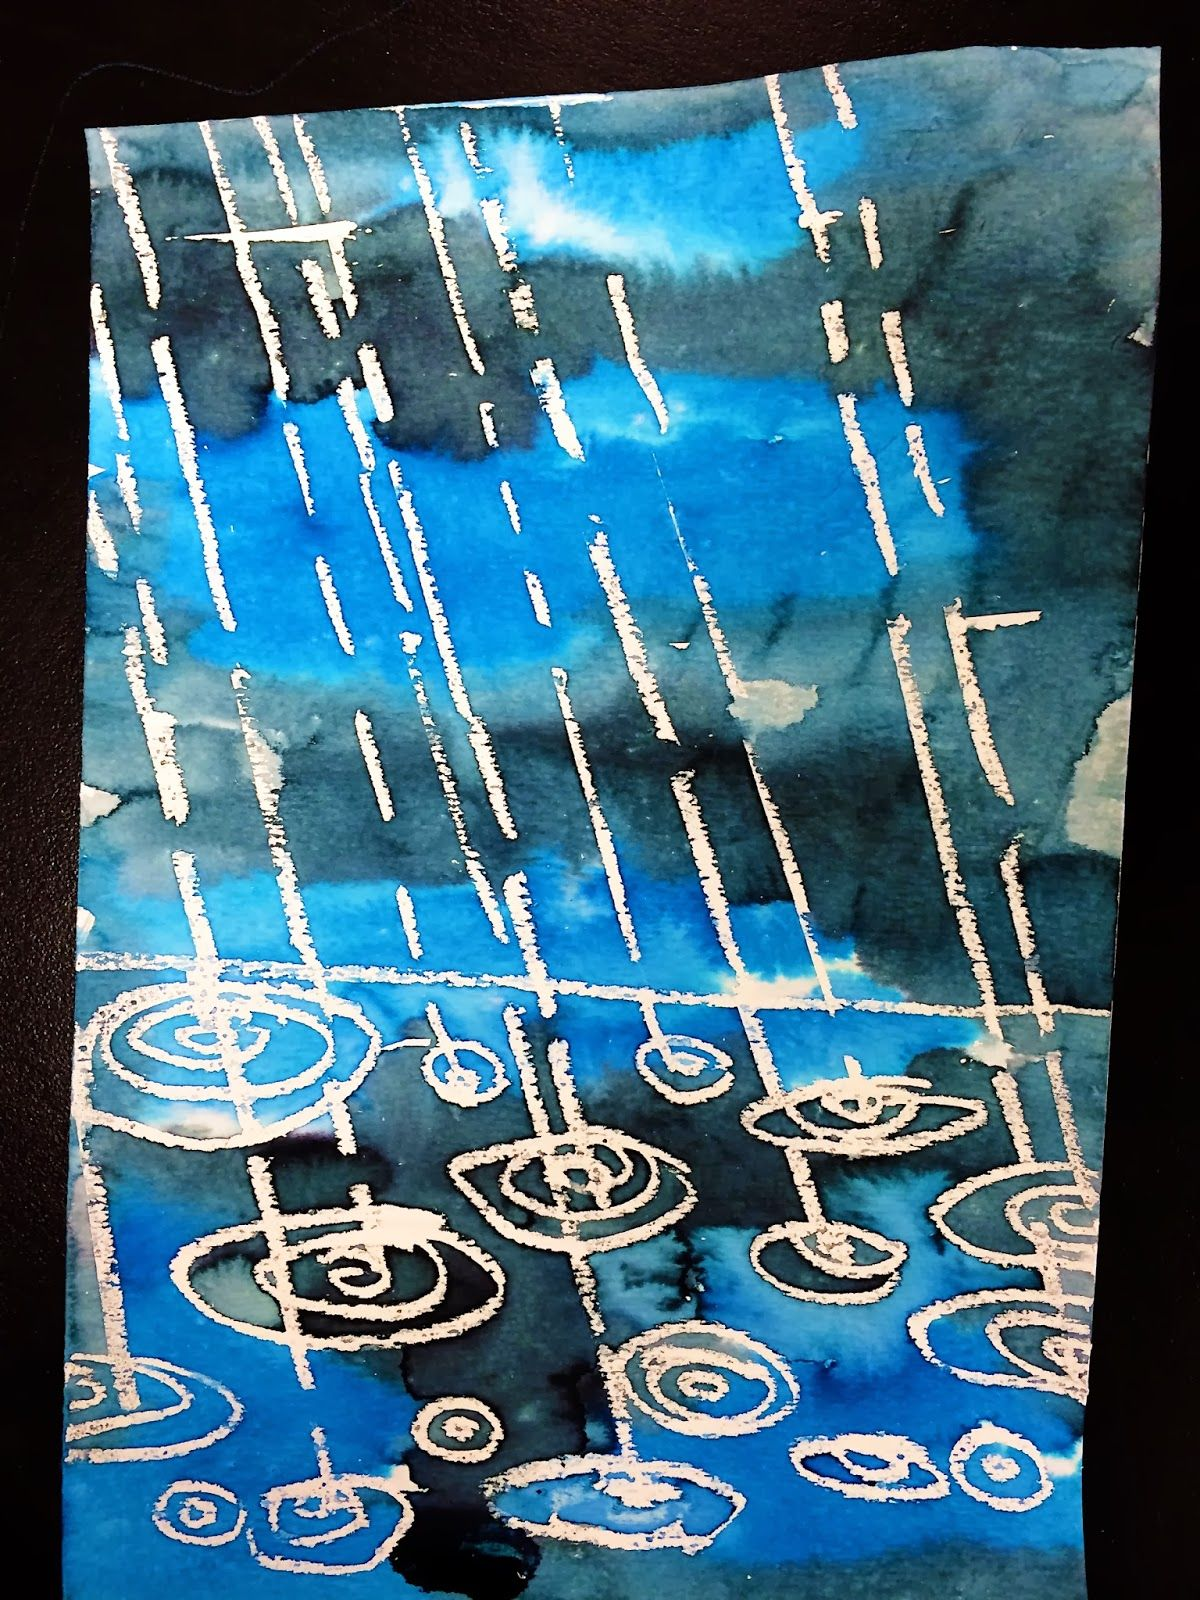 Watercolor resist - lesson on water droplets and ripples - texture ...